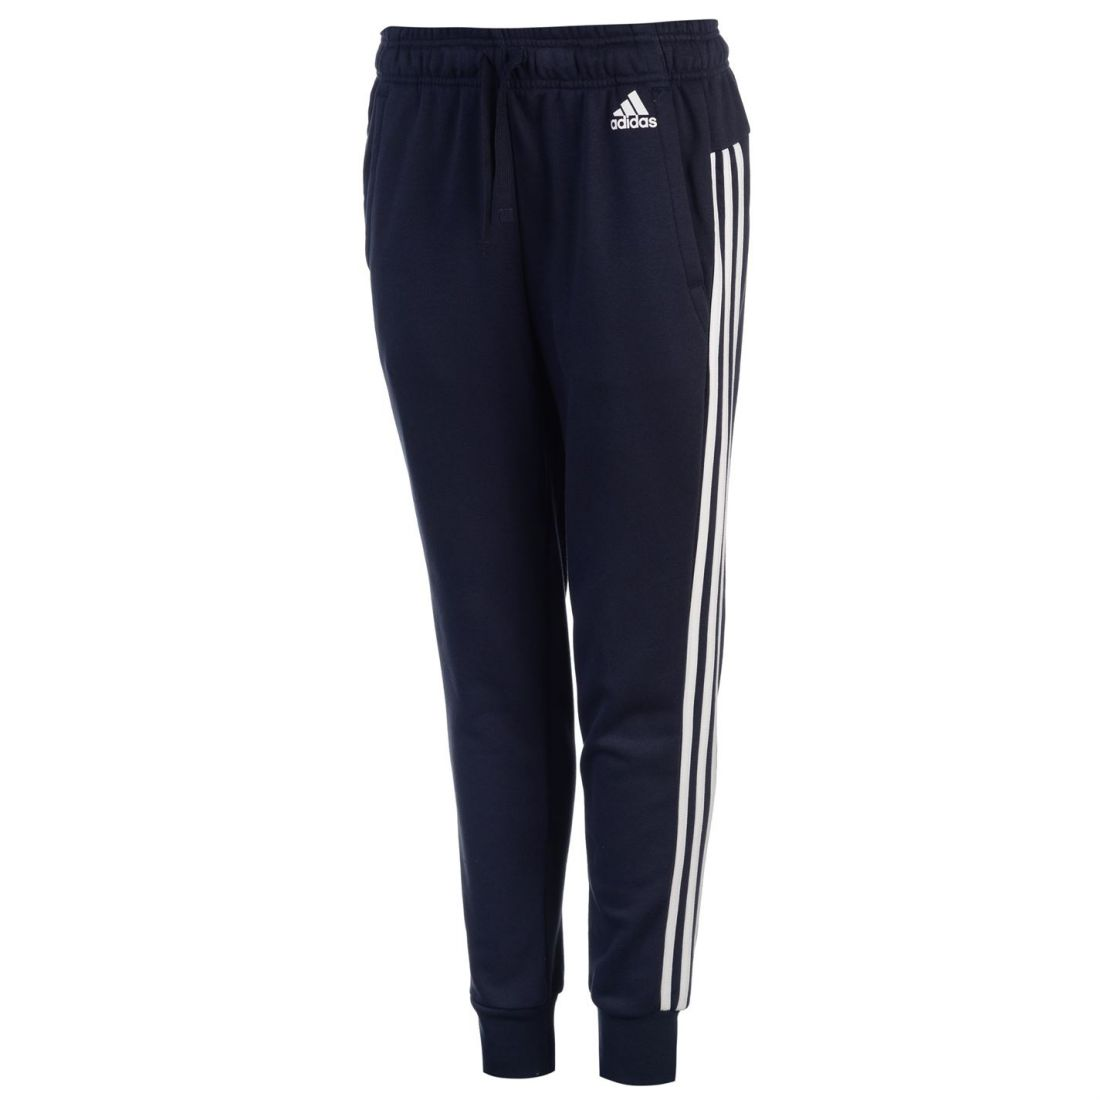 4f3170598938 adidas Essential 3 Stripe Closed Hem Pants Ladies Fleece Jogging Bottoms